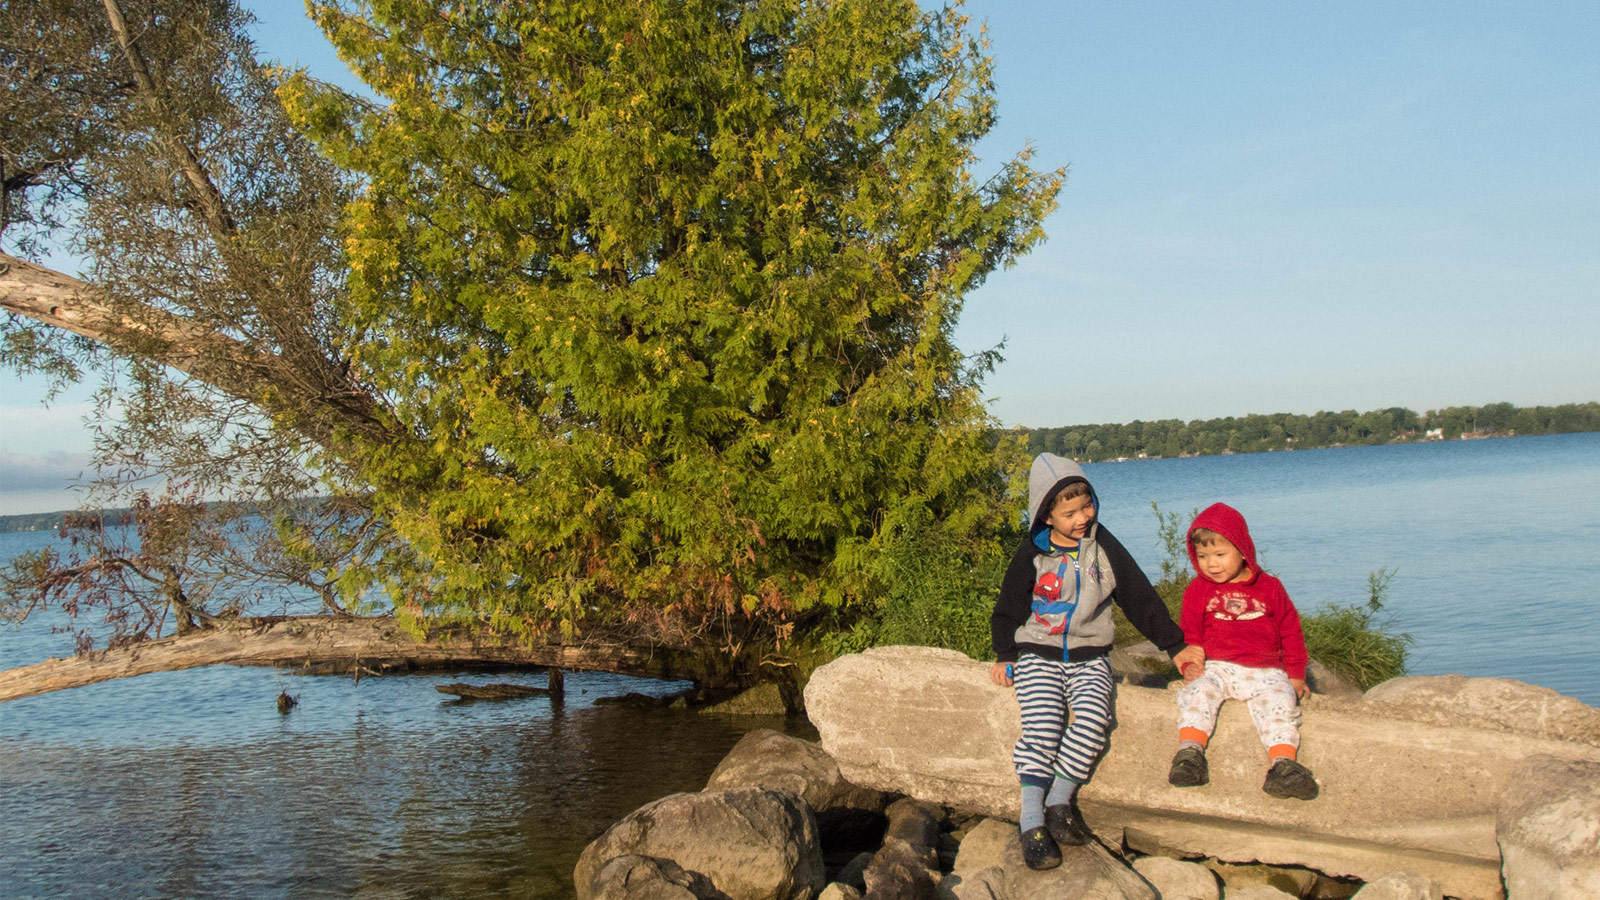 A young boy and a toddler hold hands while sitting on rocks near a tree and lake - Mara Provincial Park